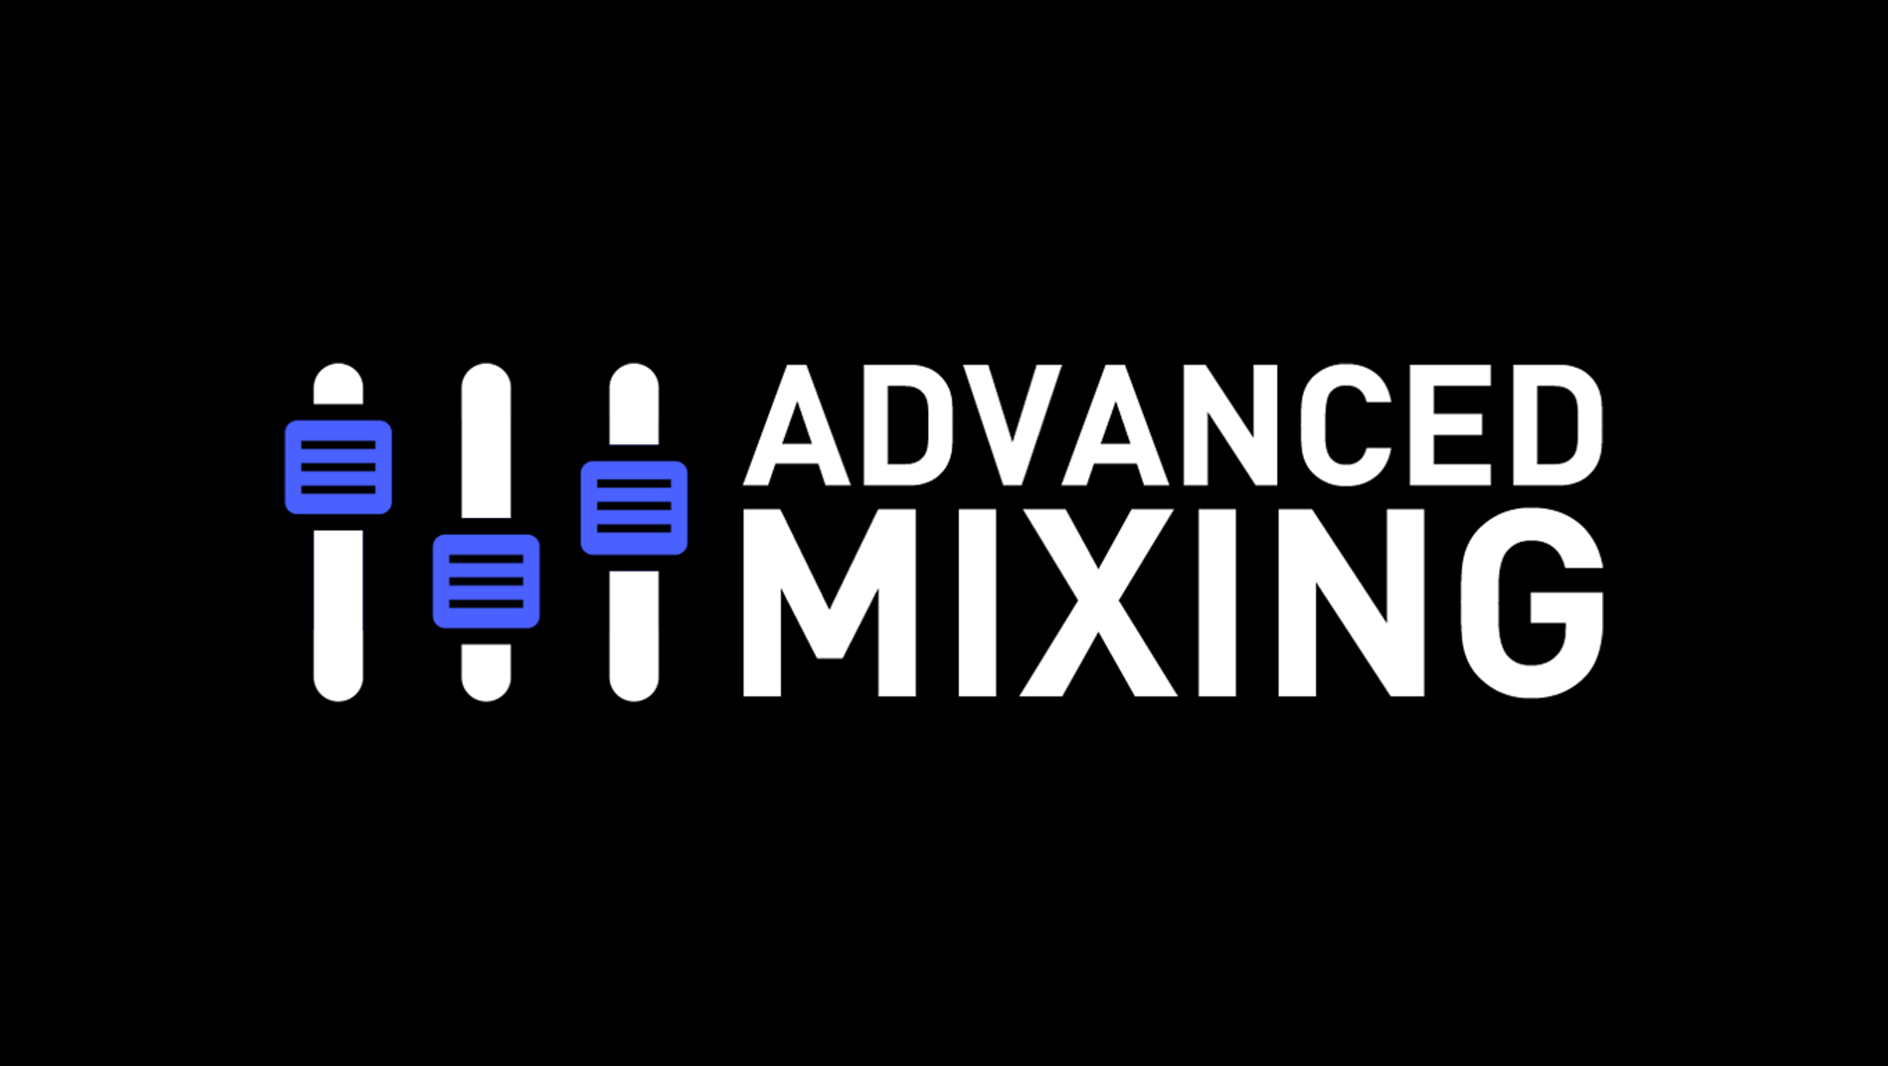 Advanced Mixing